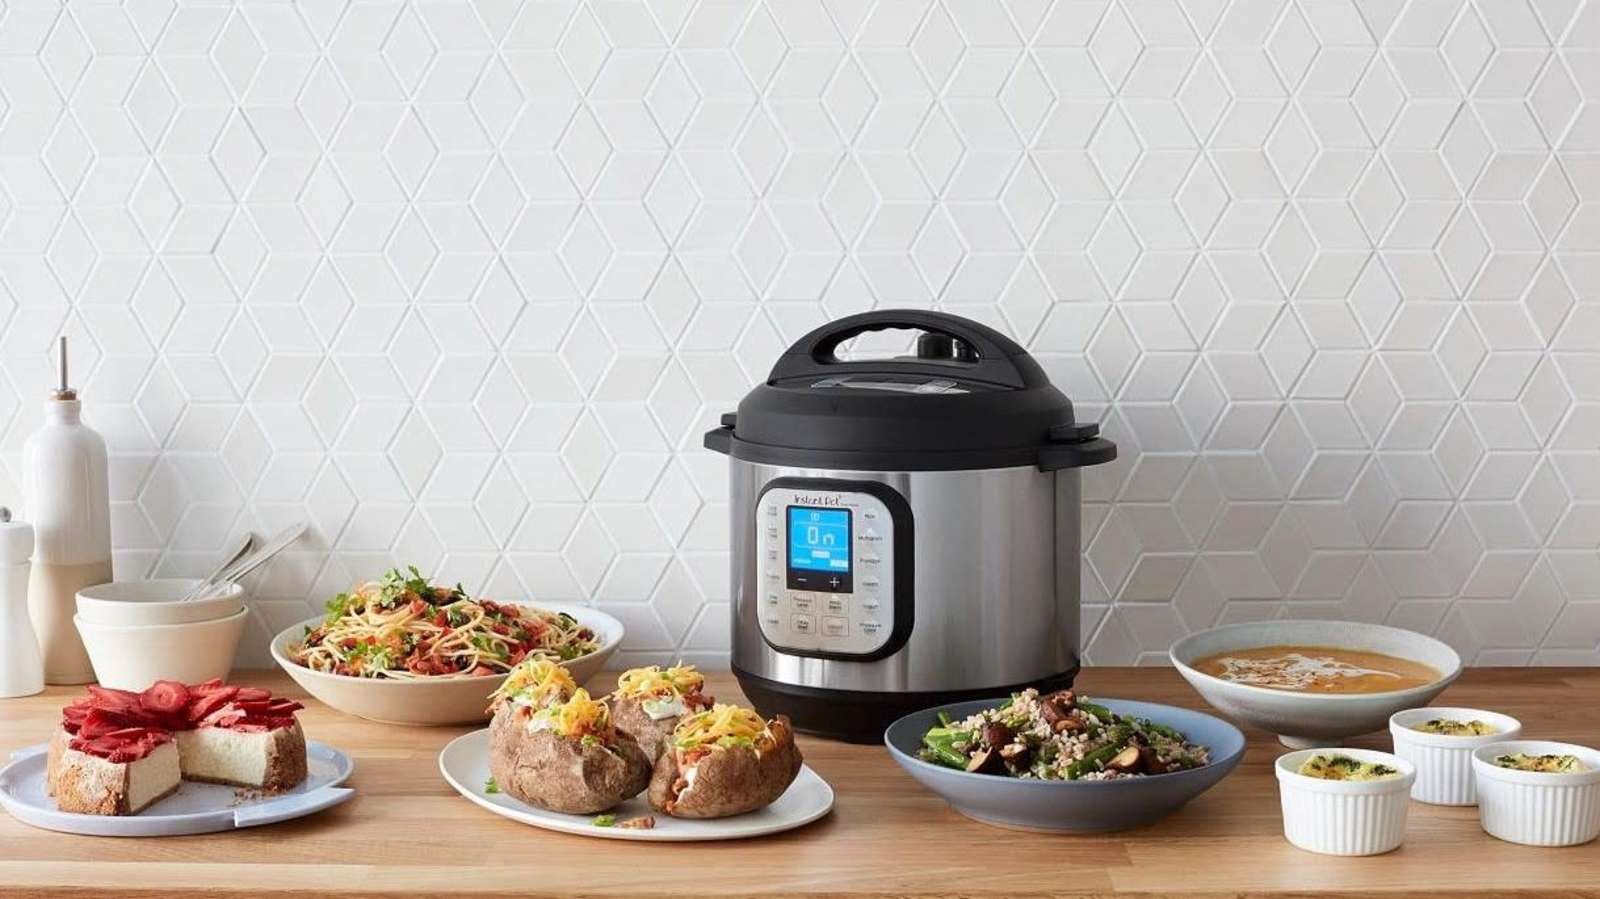 The Instant Pot Duo 7-in-1 Pressure Cooker Is Close to Its Lowest Price Ever